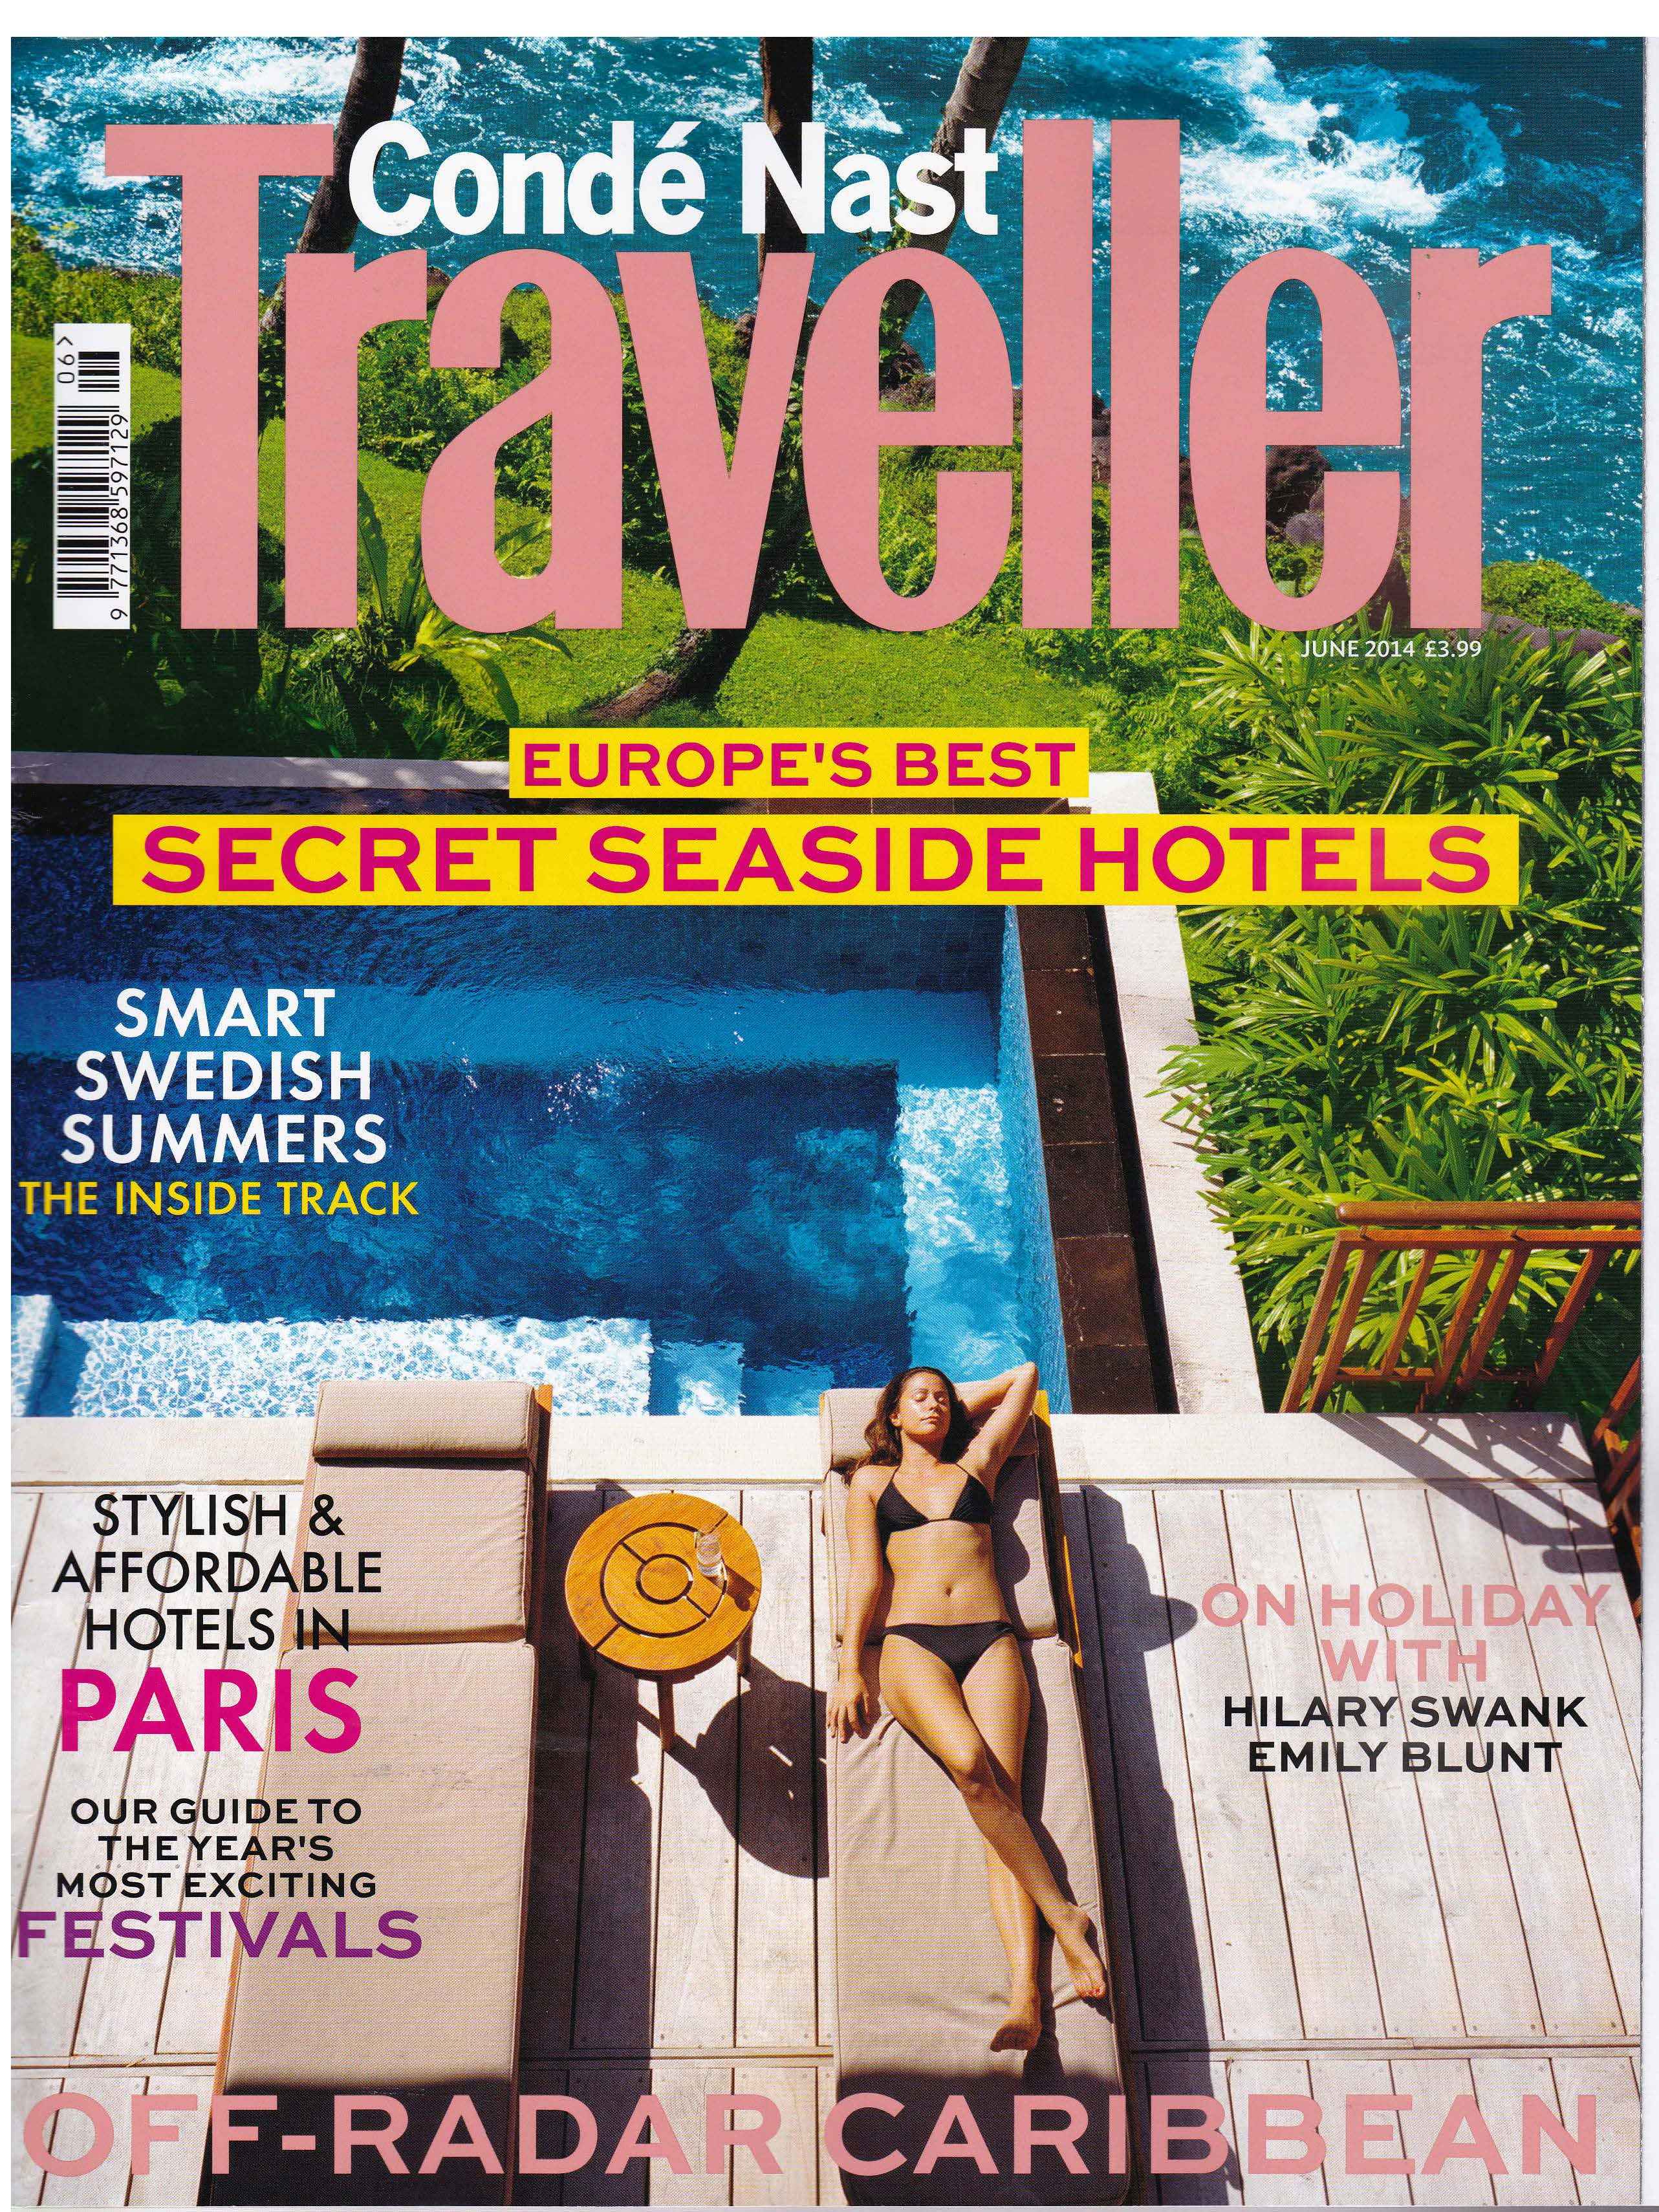 Press Coverage - Conde Nast Traveller